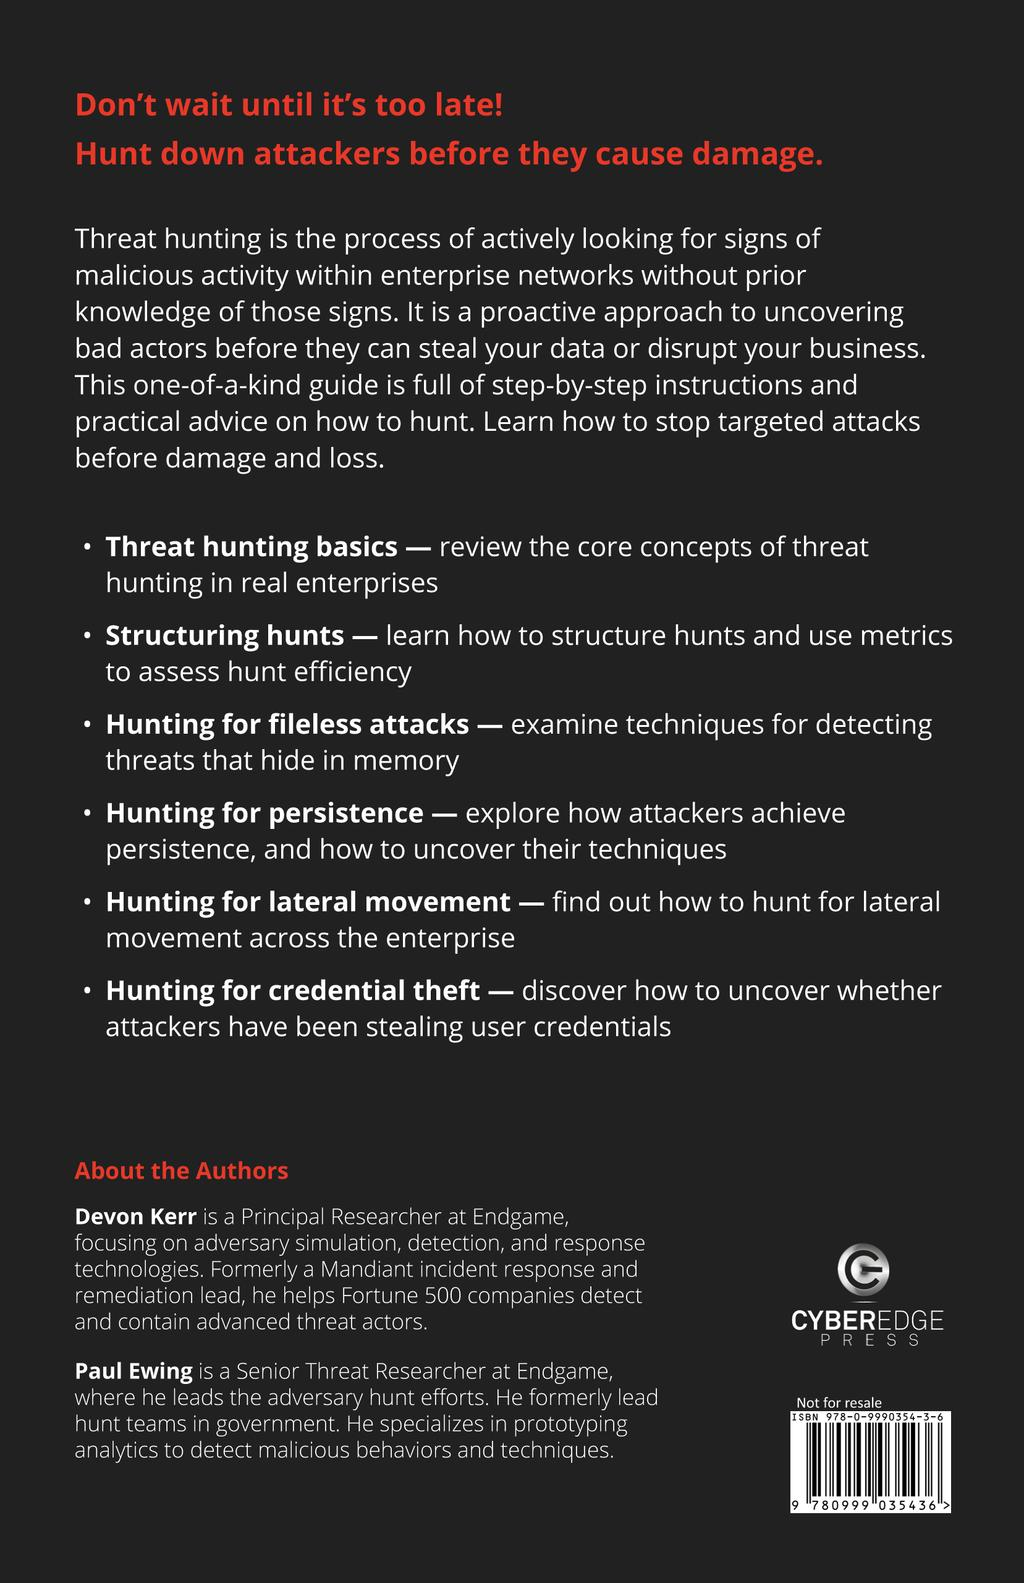 The Endgame Guide to Threat Hunting - PDF